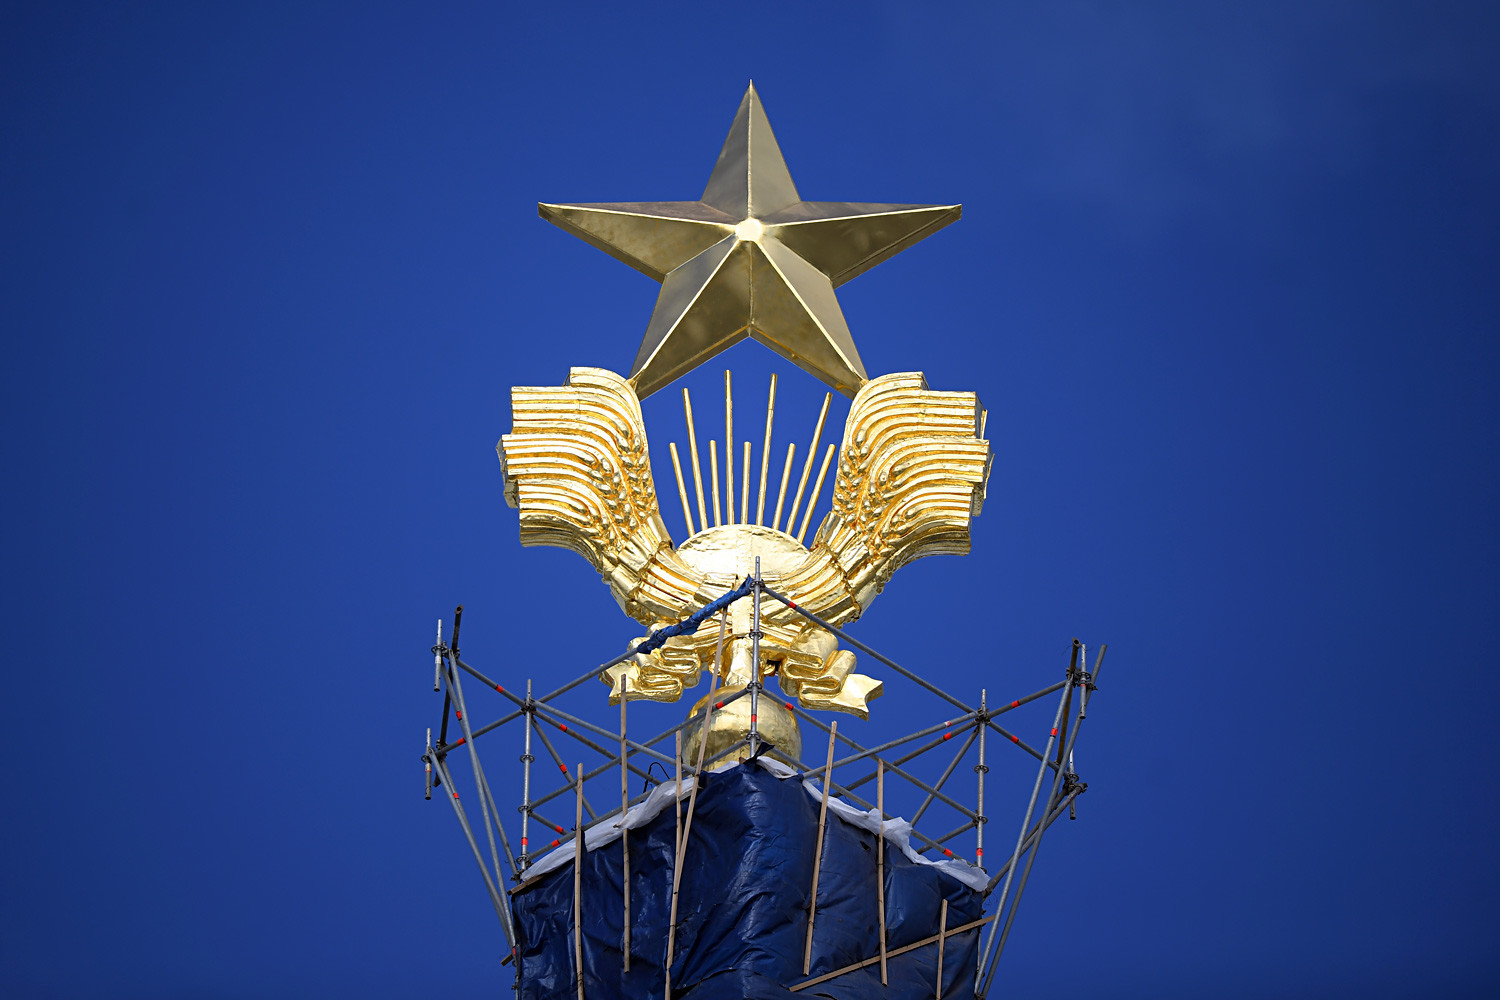 Star of VDNKh main pavilion